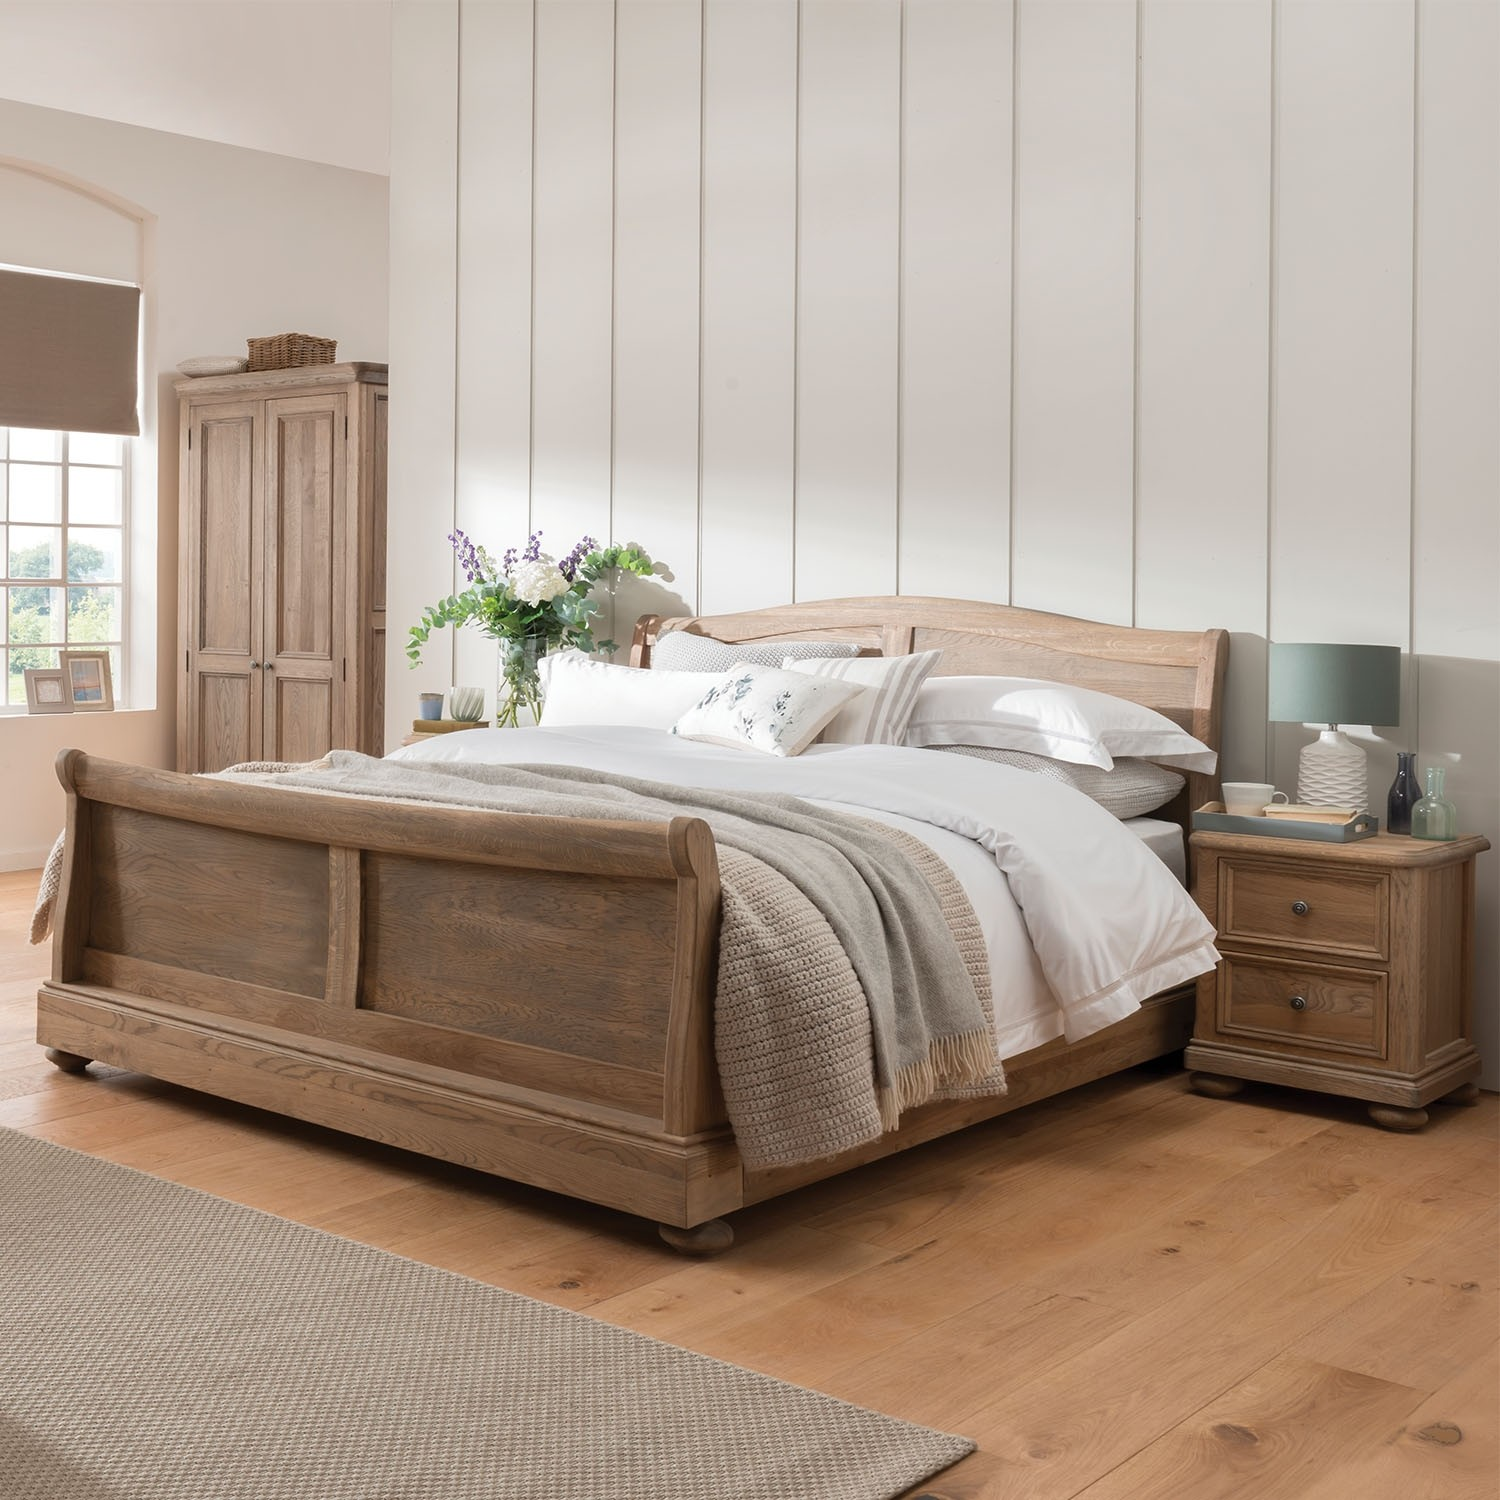 - Hunter Double Sleigh Bed Frame